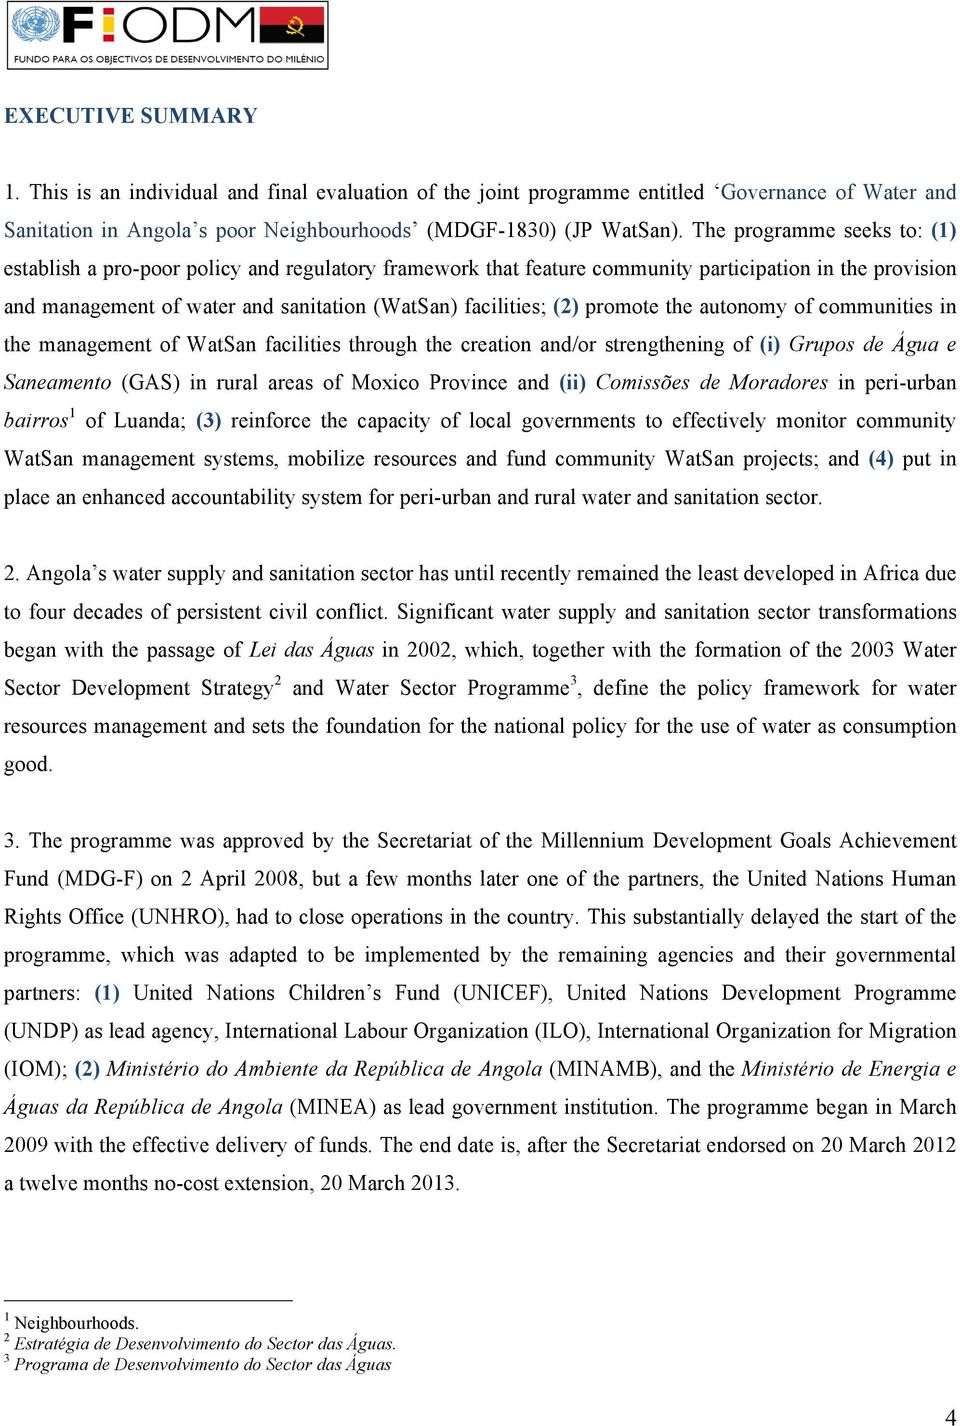 promote the autonomy of communities in the management of WatSan facilities through the creation and/or strengthening of (i) Grupos de Água e Saneamento (GAS) in rural areas of Moxico Province and